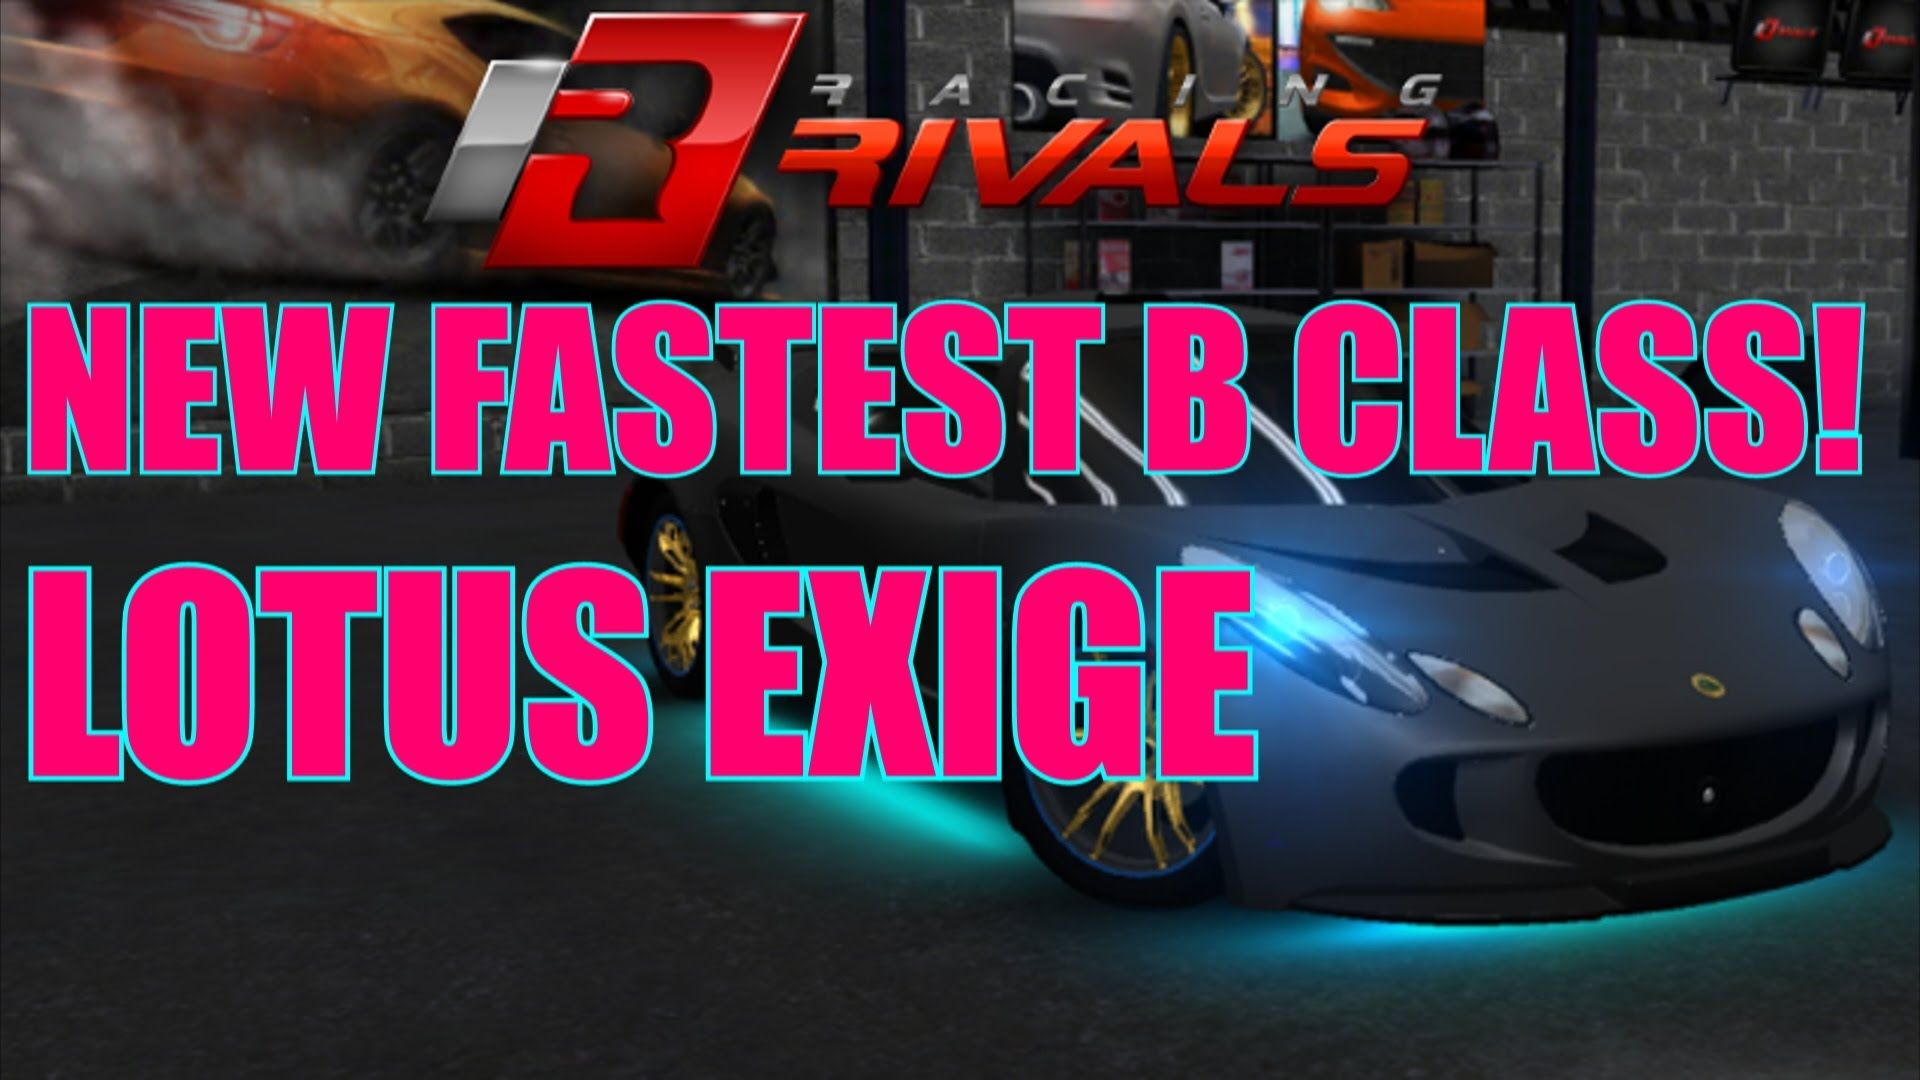 New fastest b class lotus exige tune racing rivals